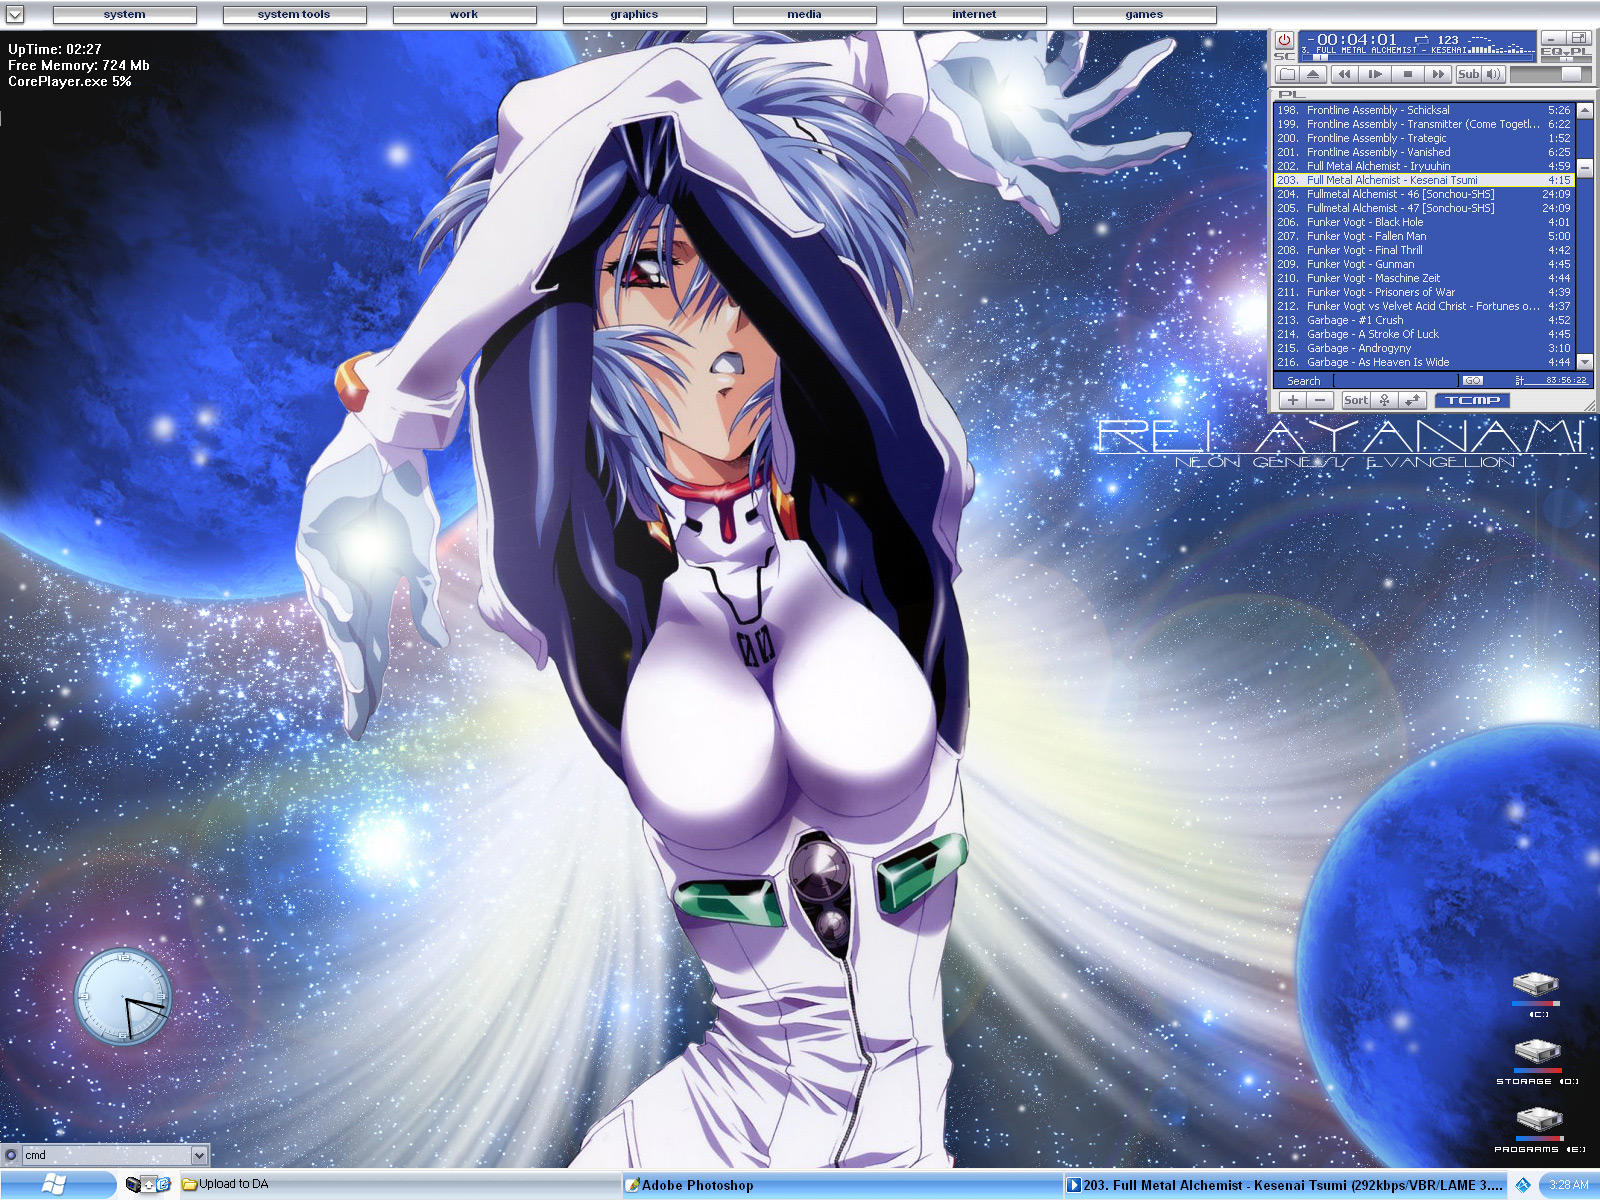 My Desktop - 9.11.2004 by Drakx